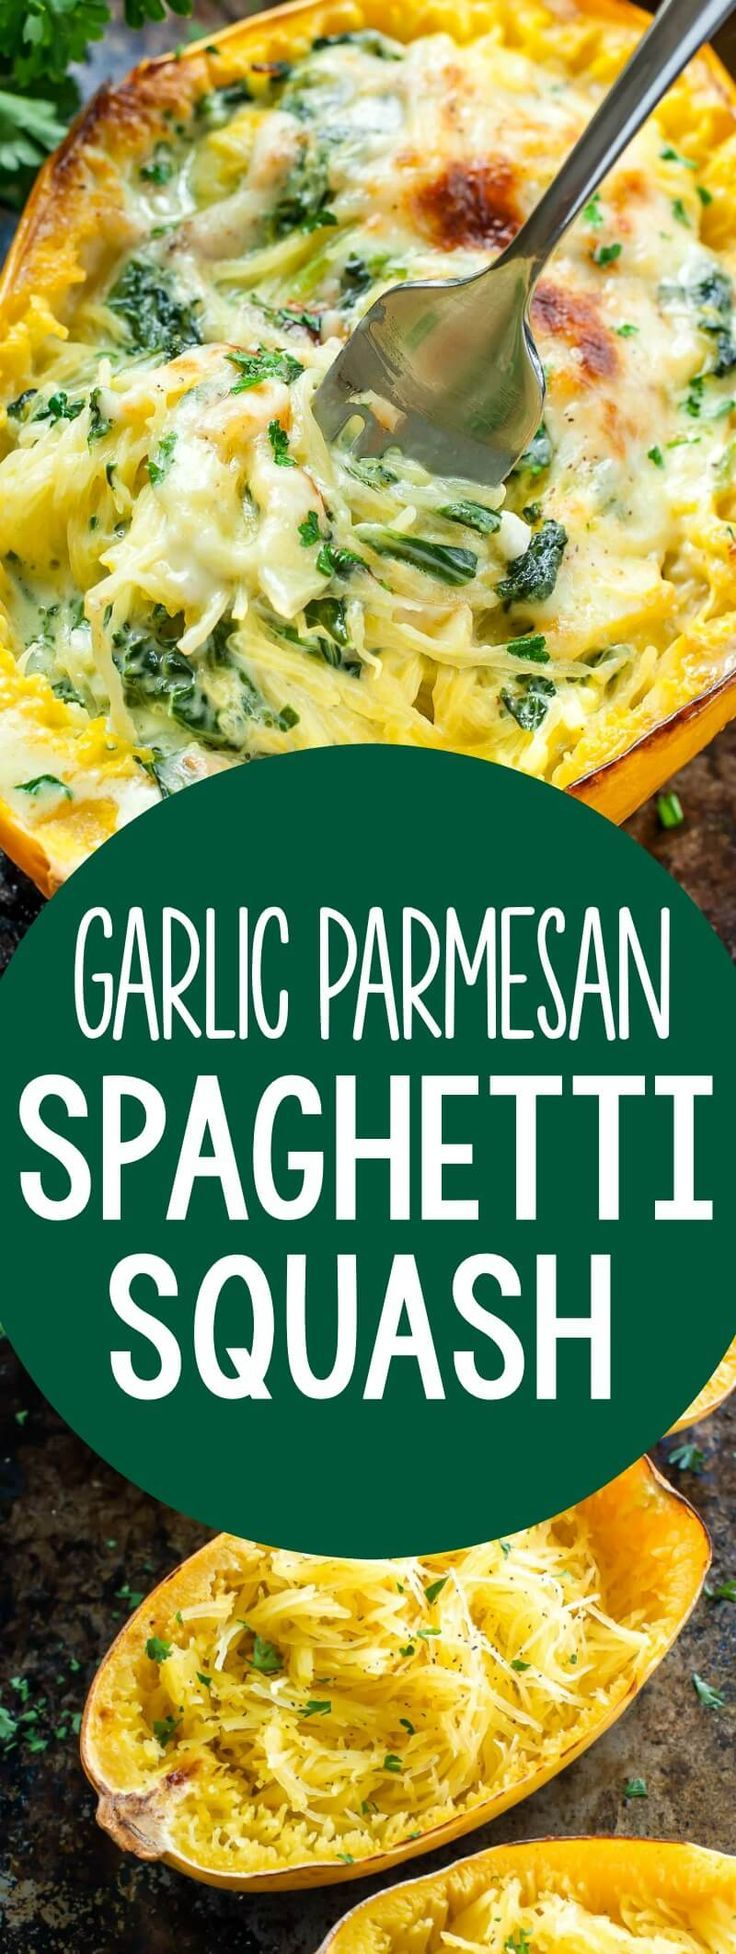 Cheesy Garlic Parmesan Spinach Spaghetti Squash - Peas And Crayons